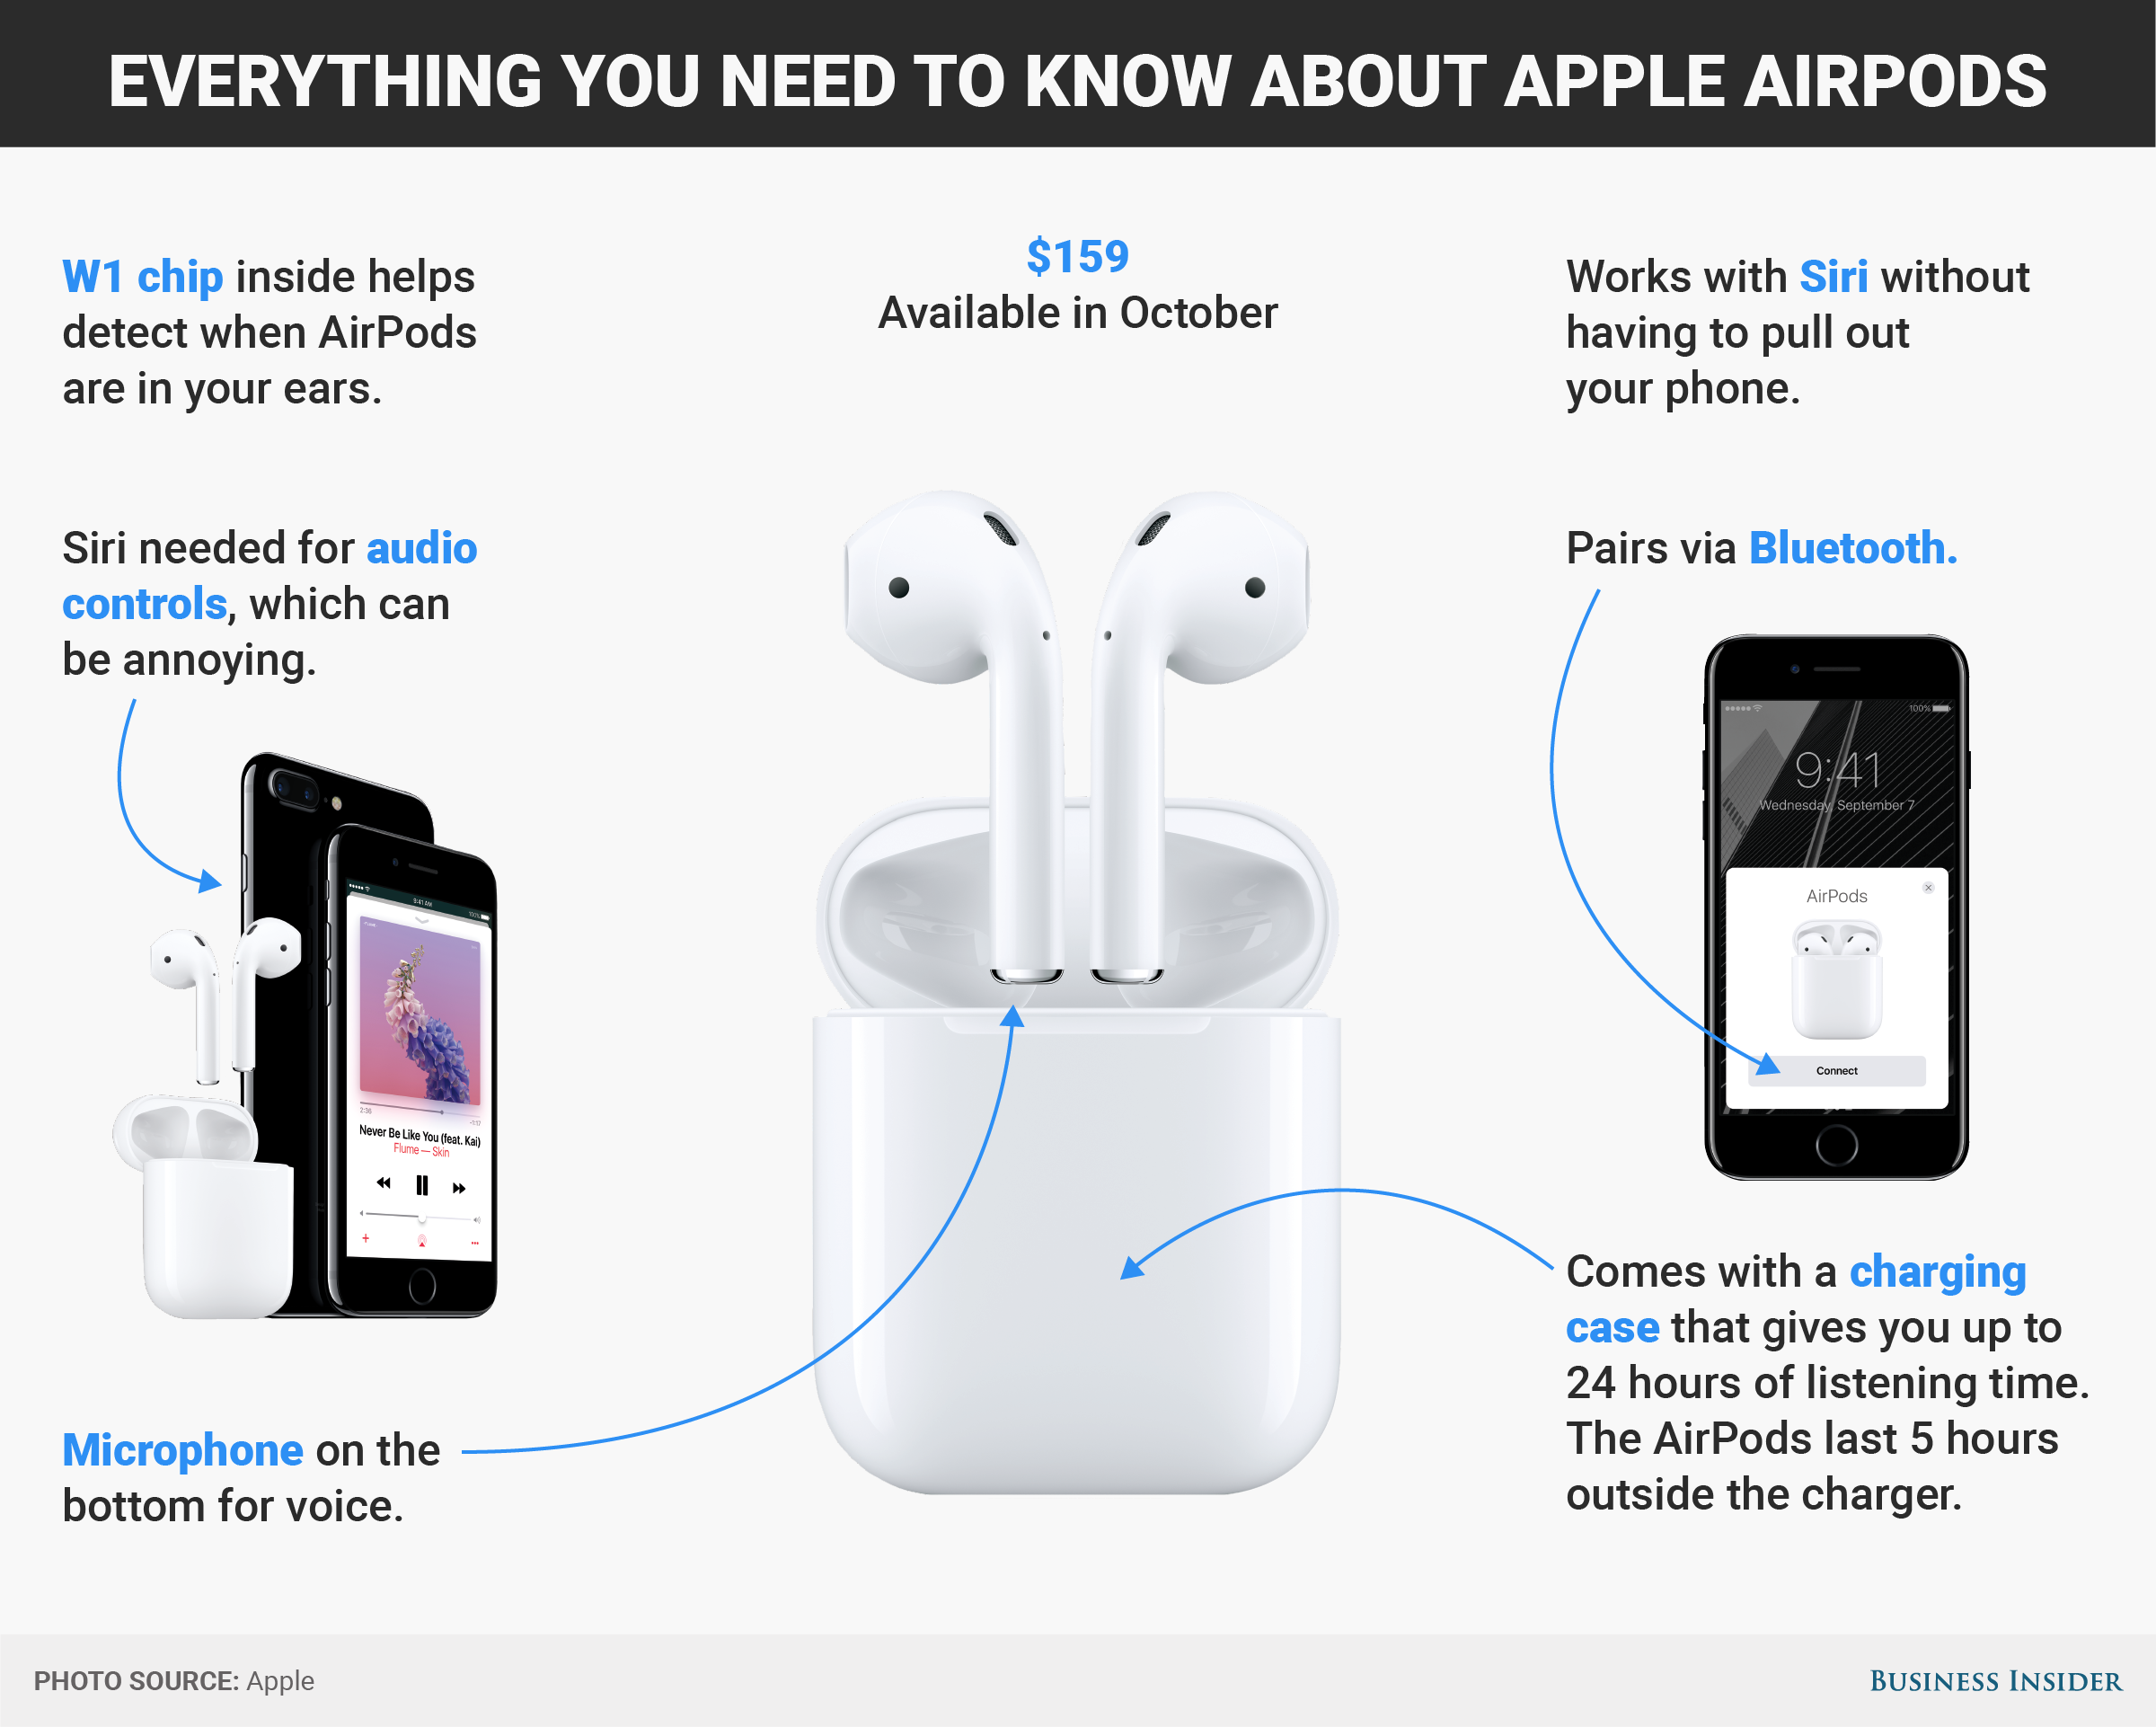 d8e26b35830 Everything you need to know about Apple AirPods Air Pods, Apple New, Travel  Items